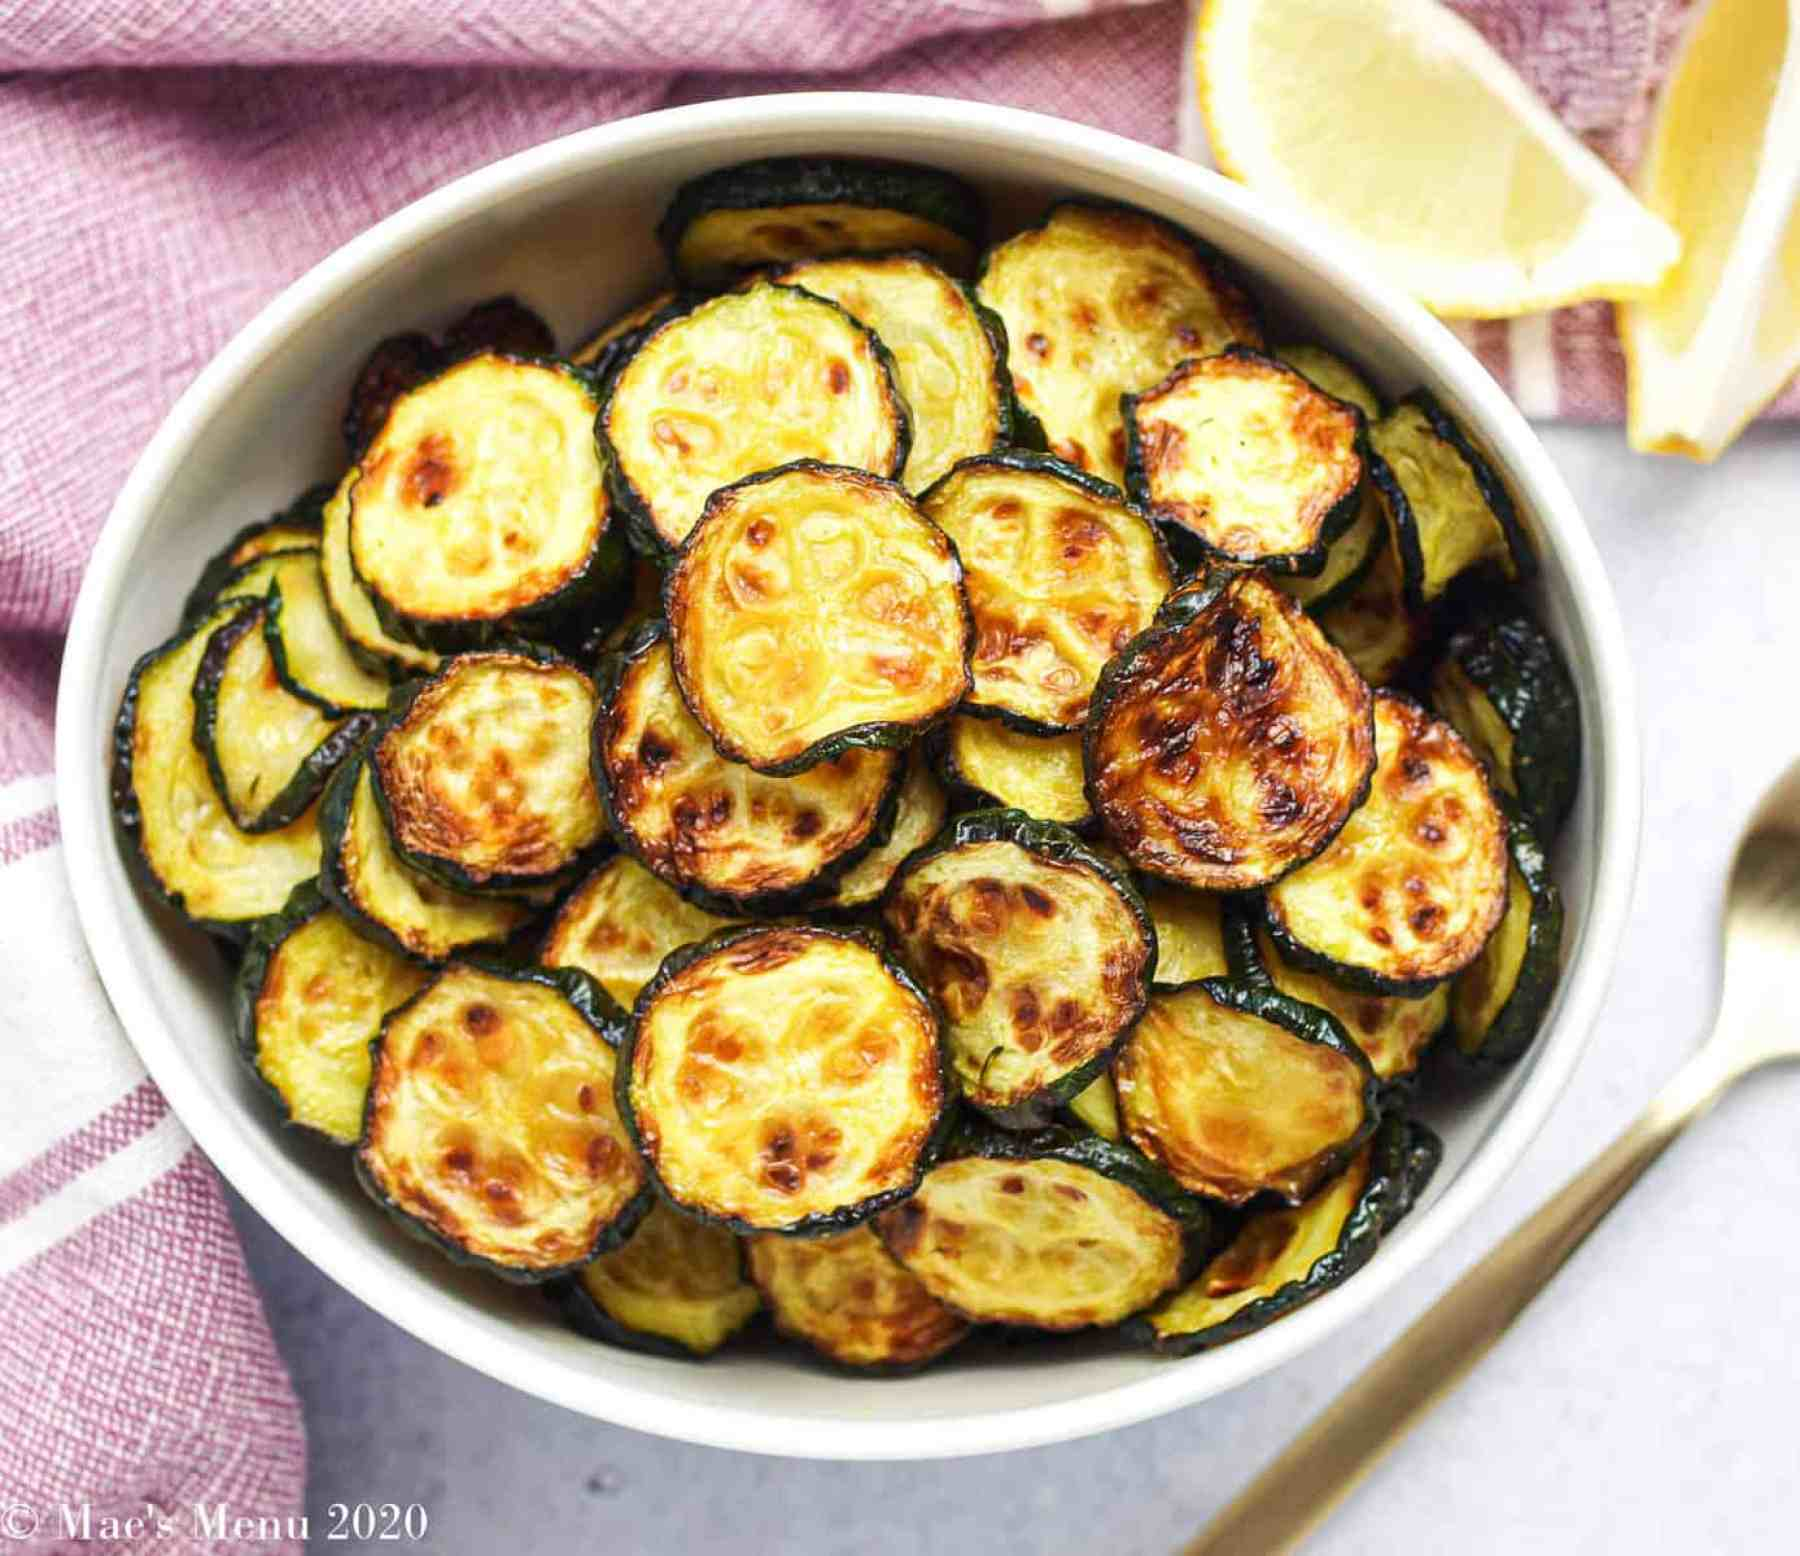 A small bowl of air fryer zucchini in a small white bowl